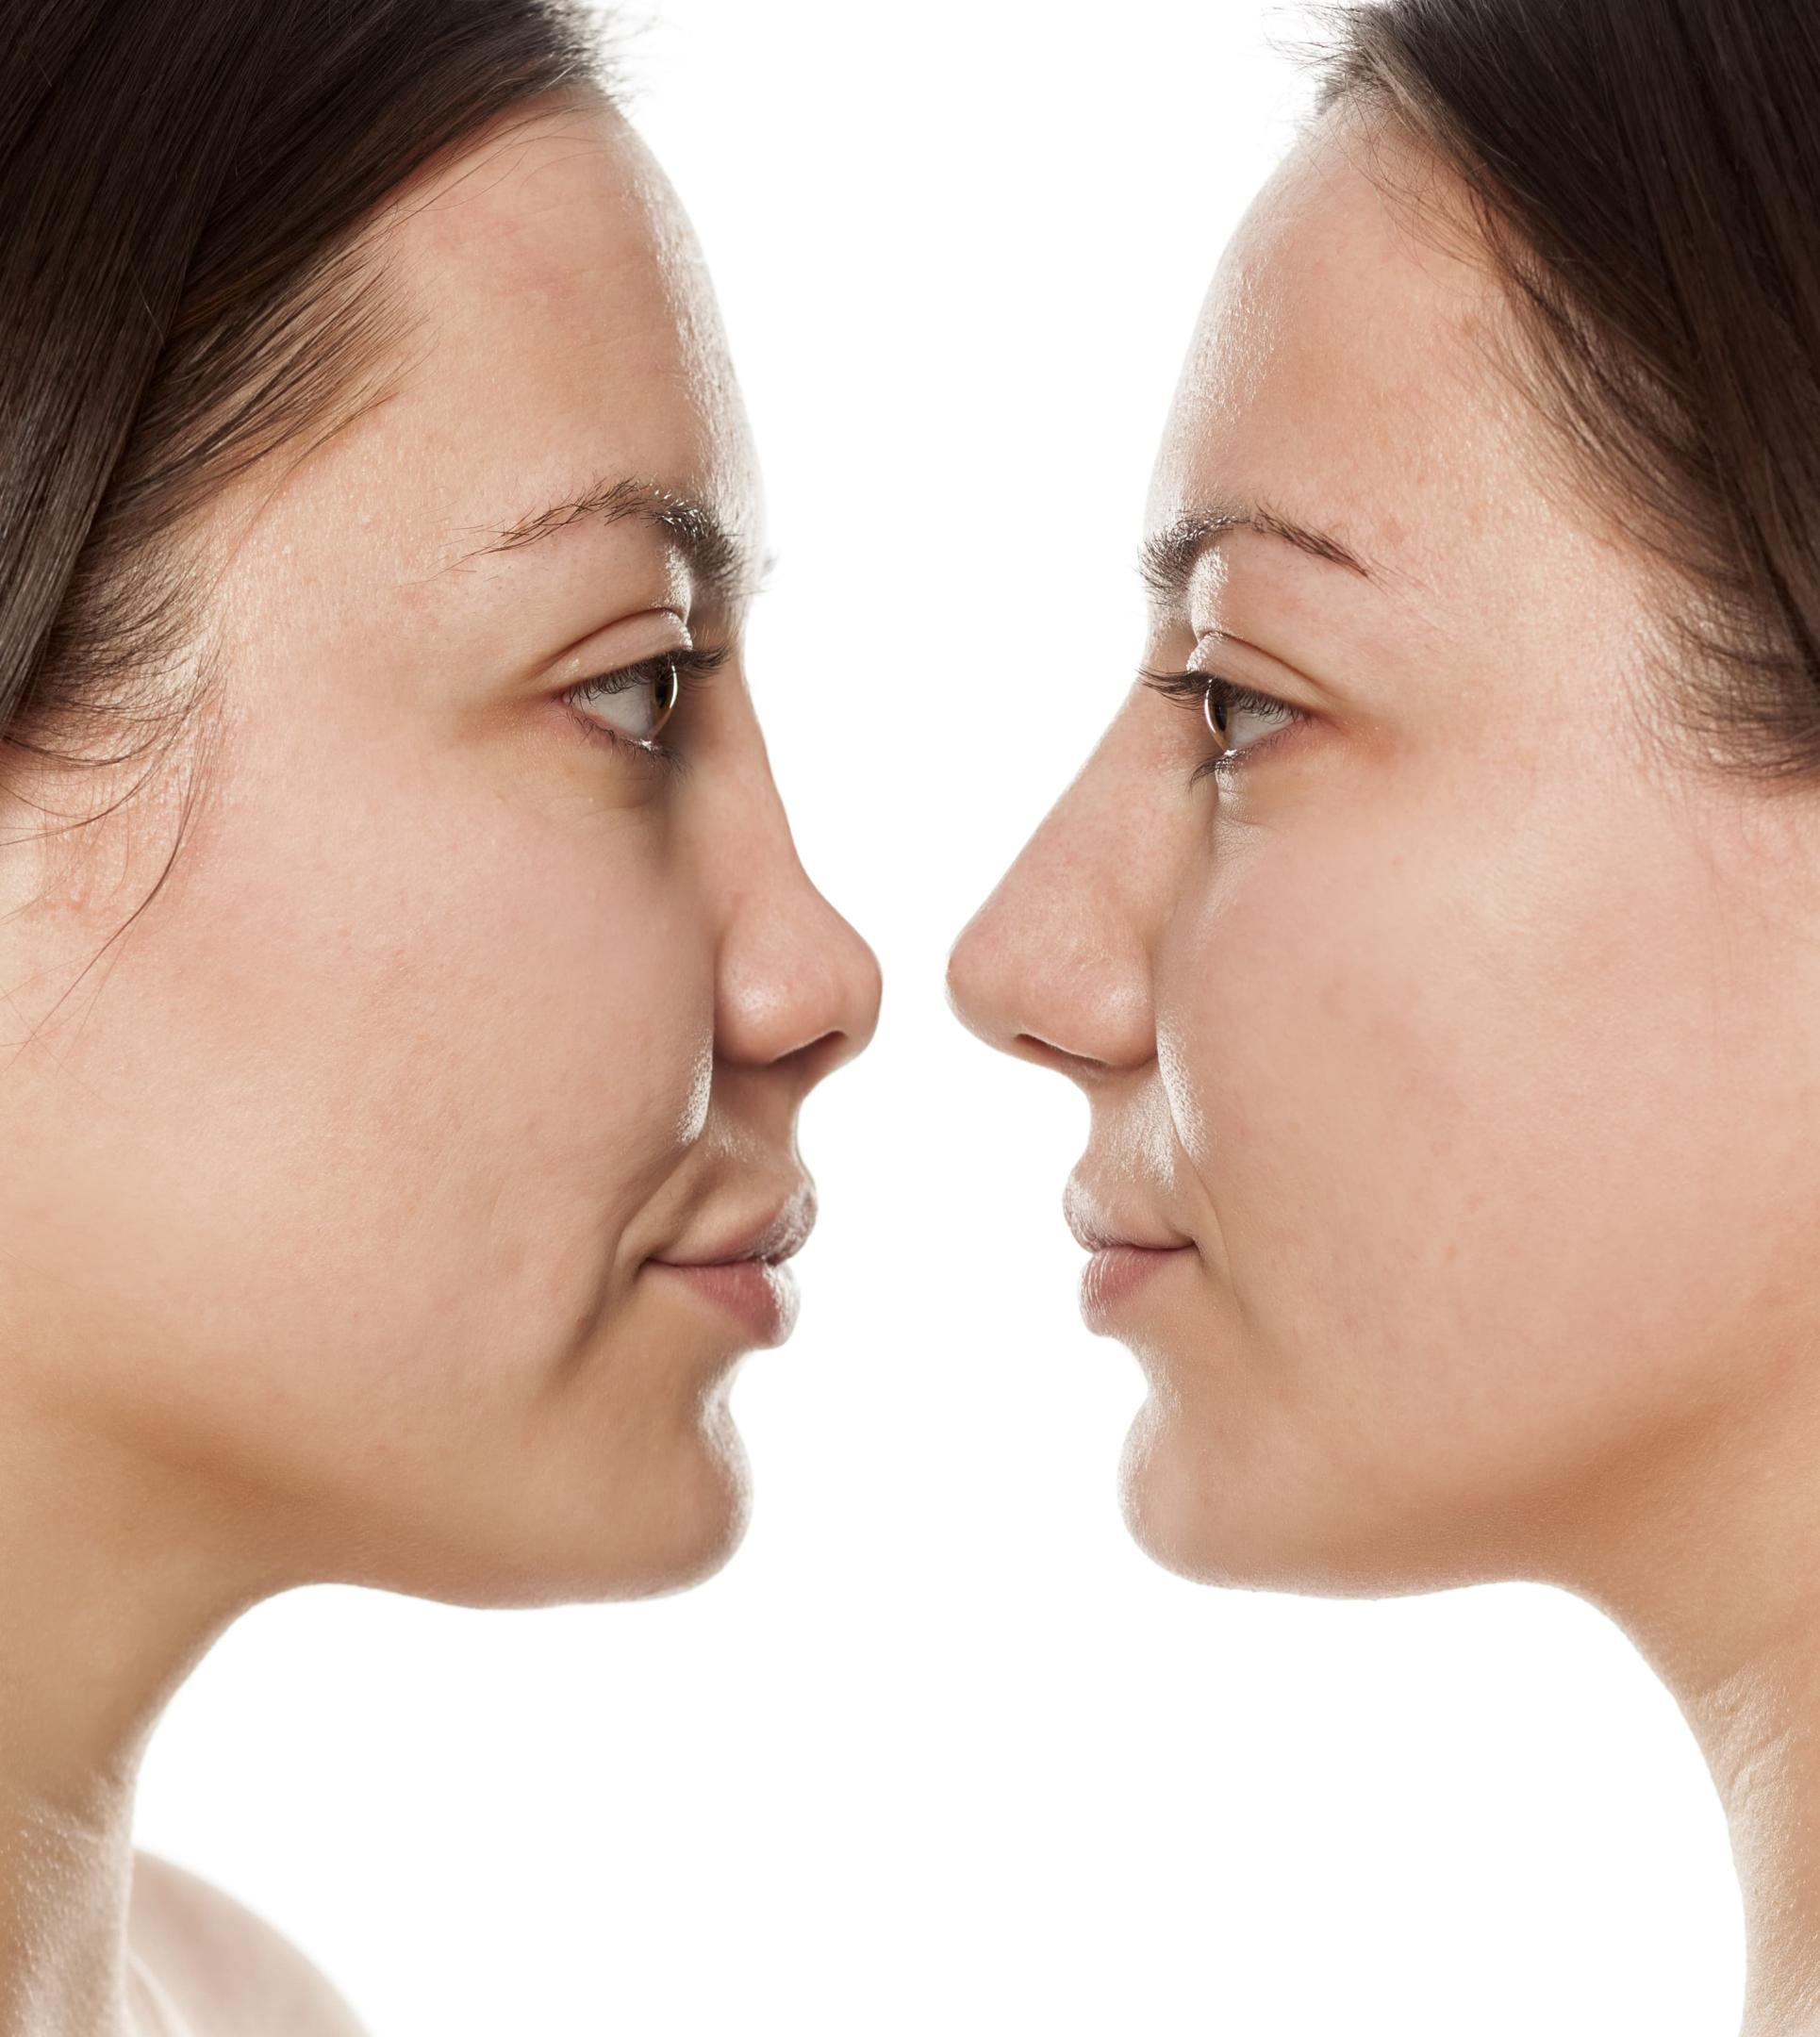 Face Plastic Surgery Before And After Photos 1